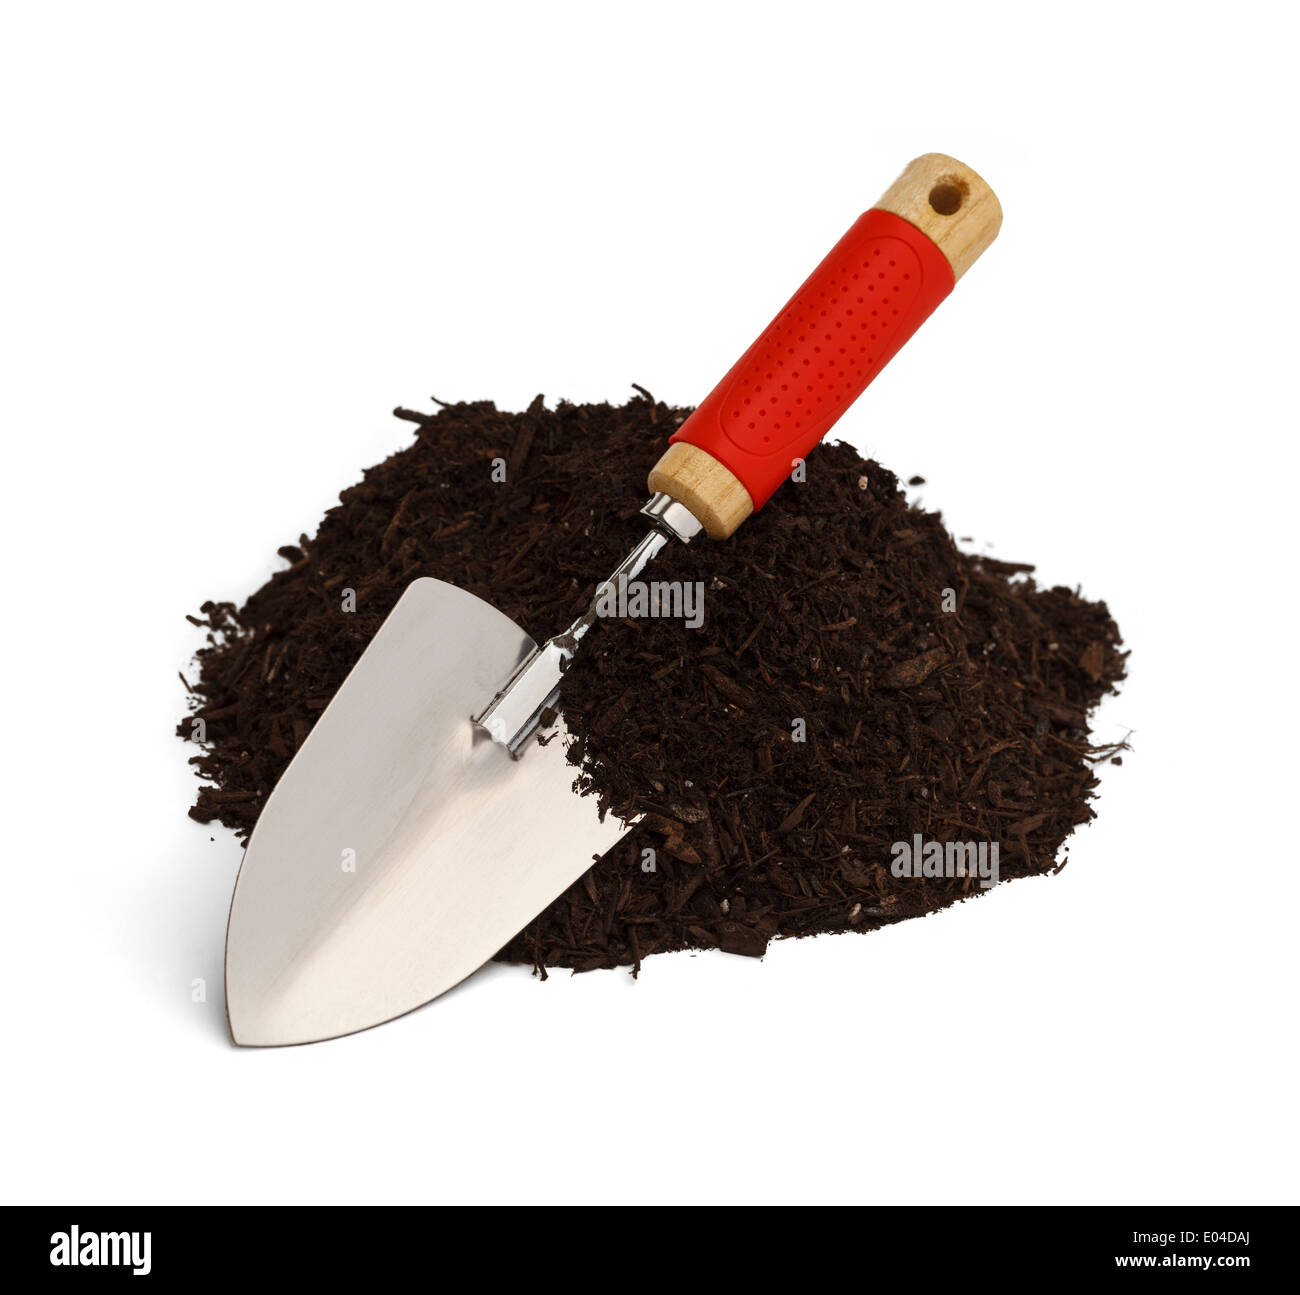 Pile of Dirt with Shovel Isolated on White Background. - Stock Image